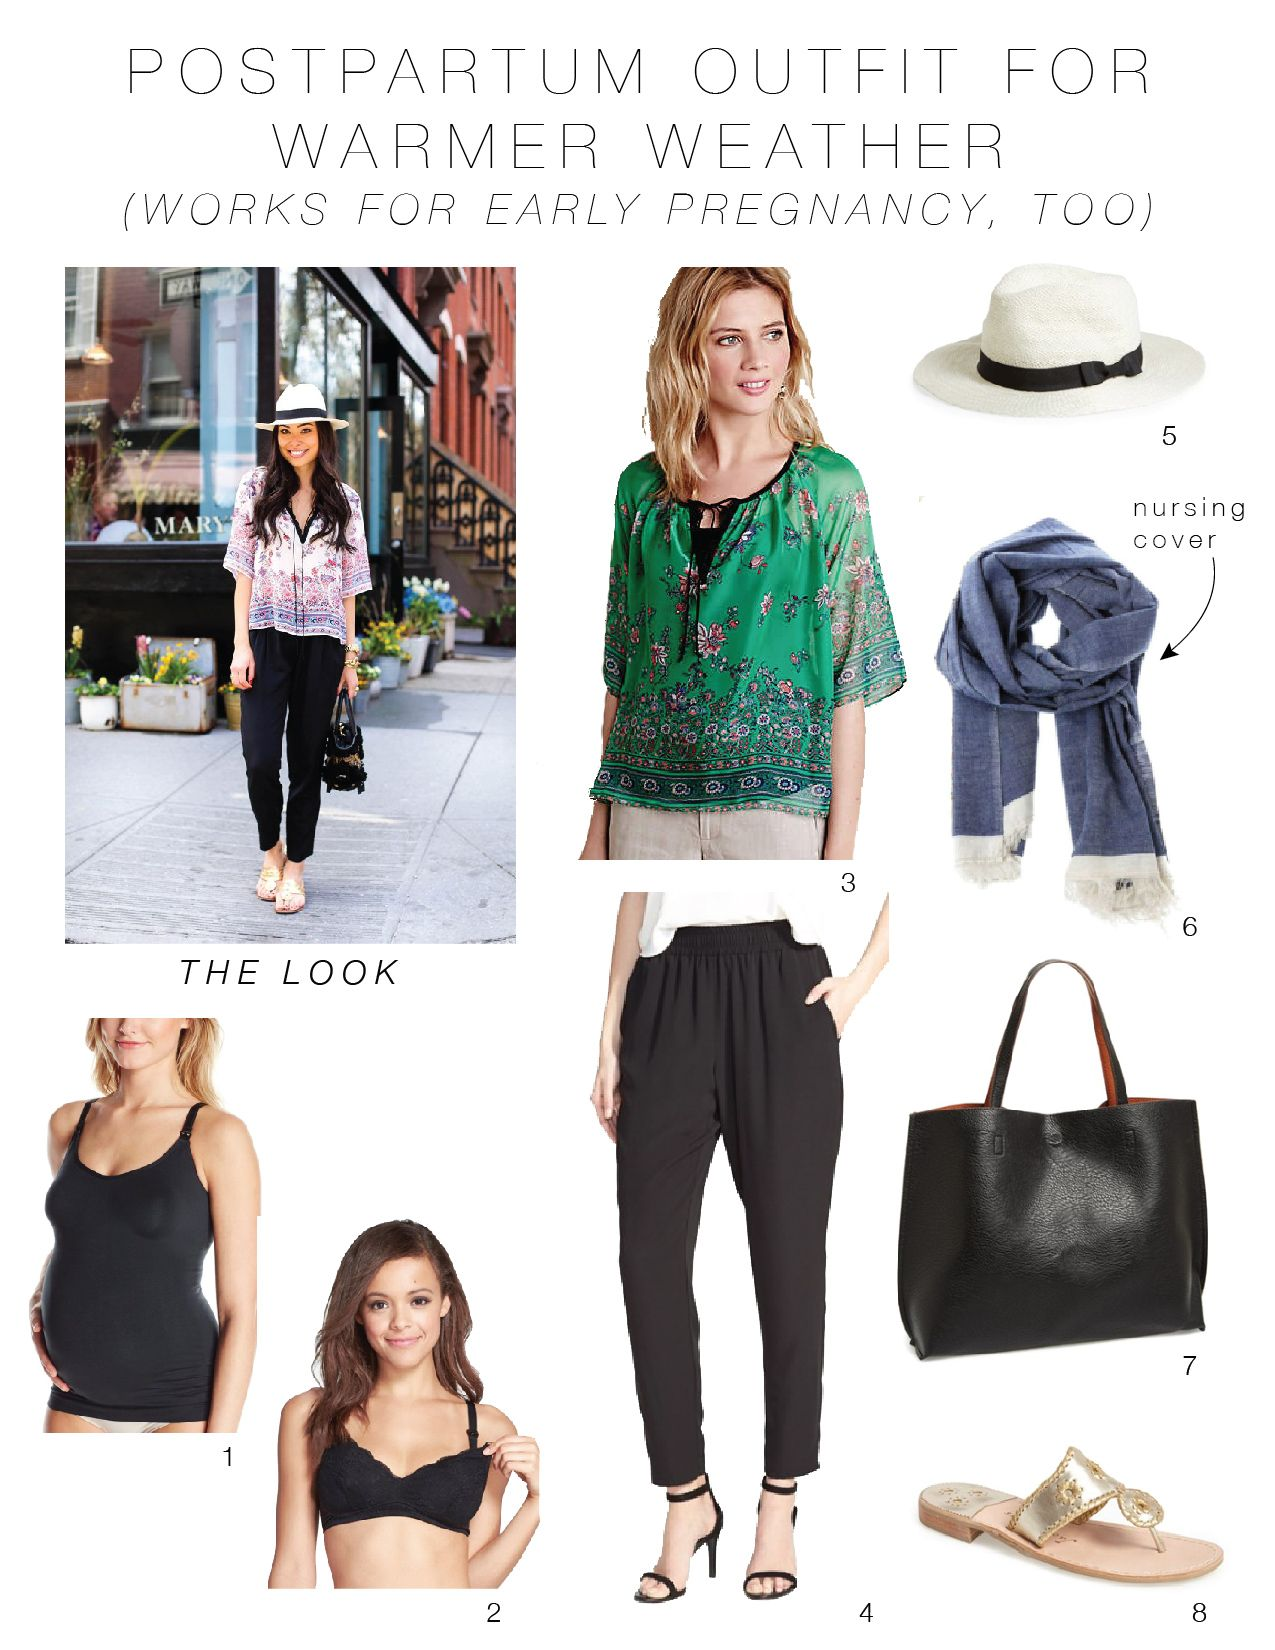 12f76e8dc9a6a I like the ideas they've put together here - an interesting and flattering  top with comfy bottoms.